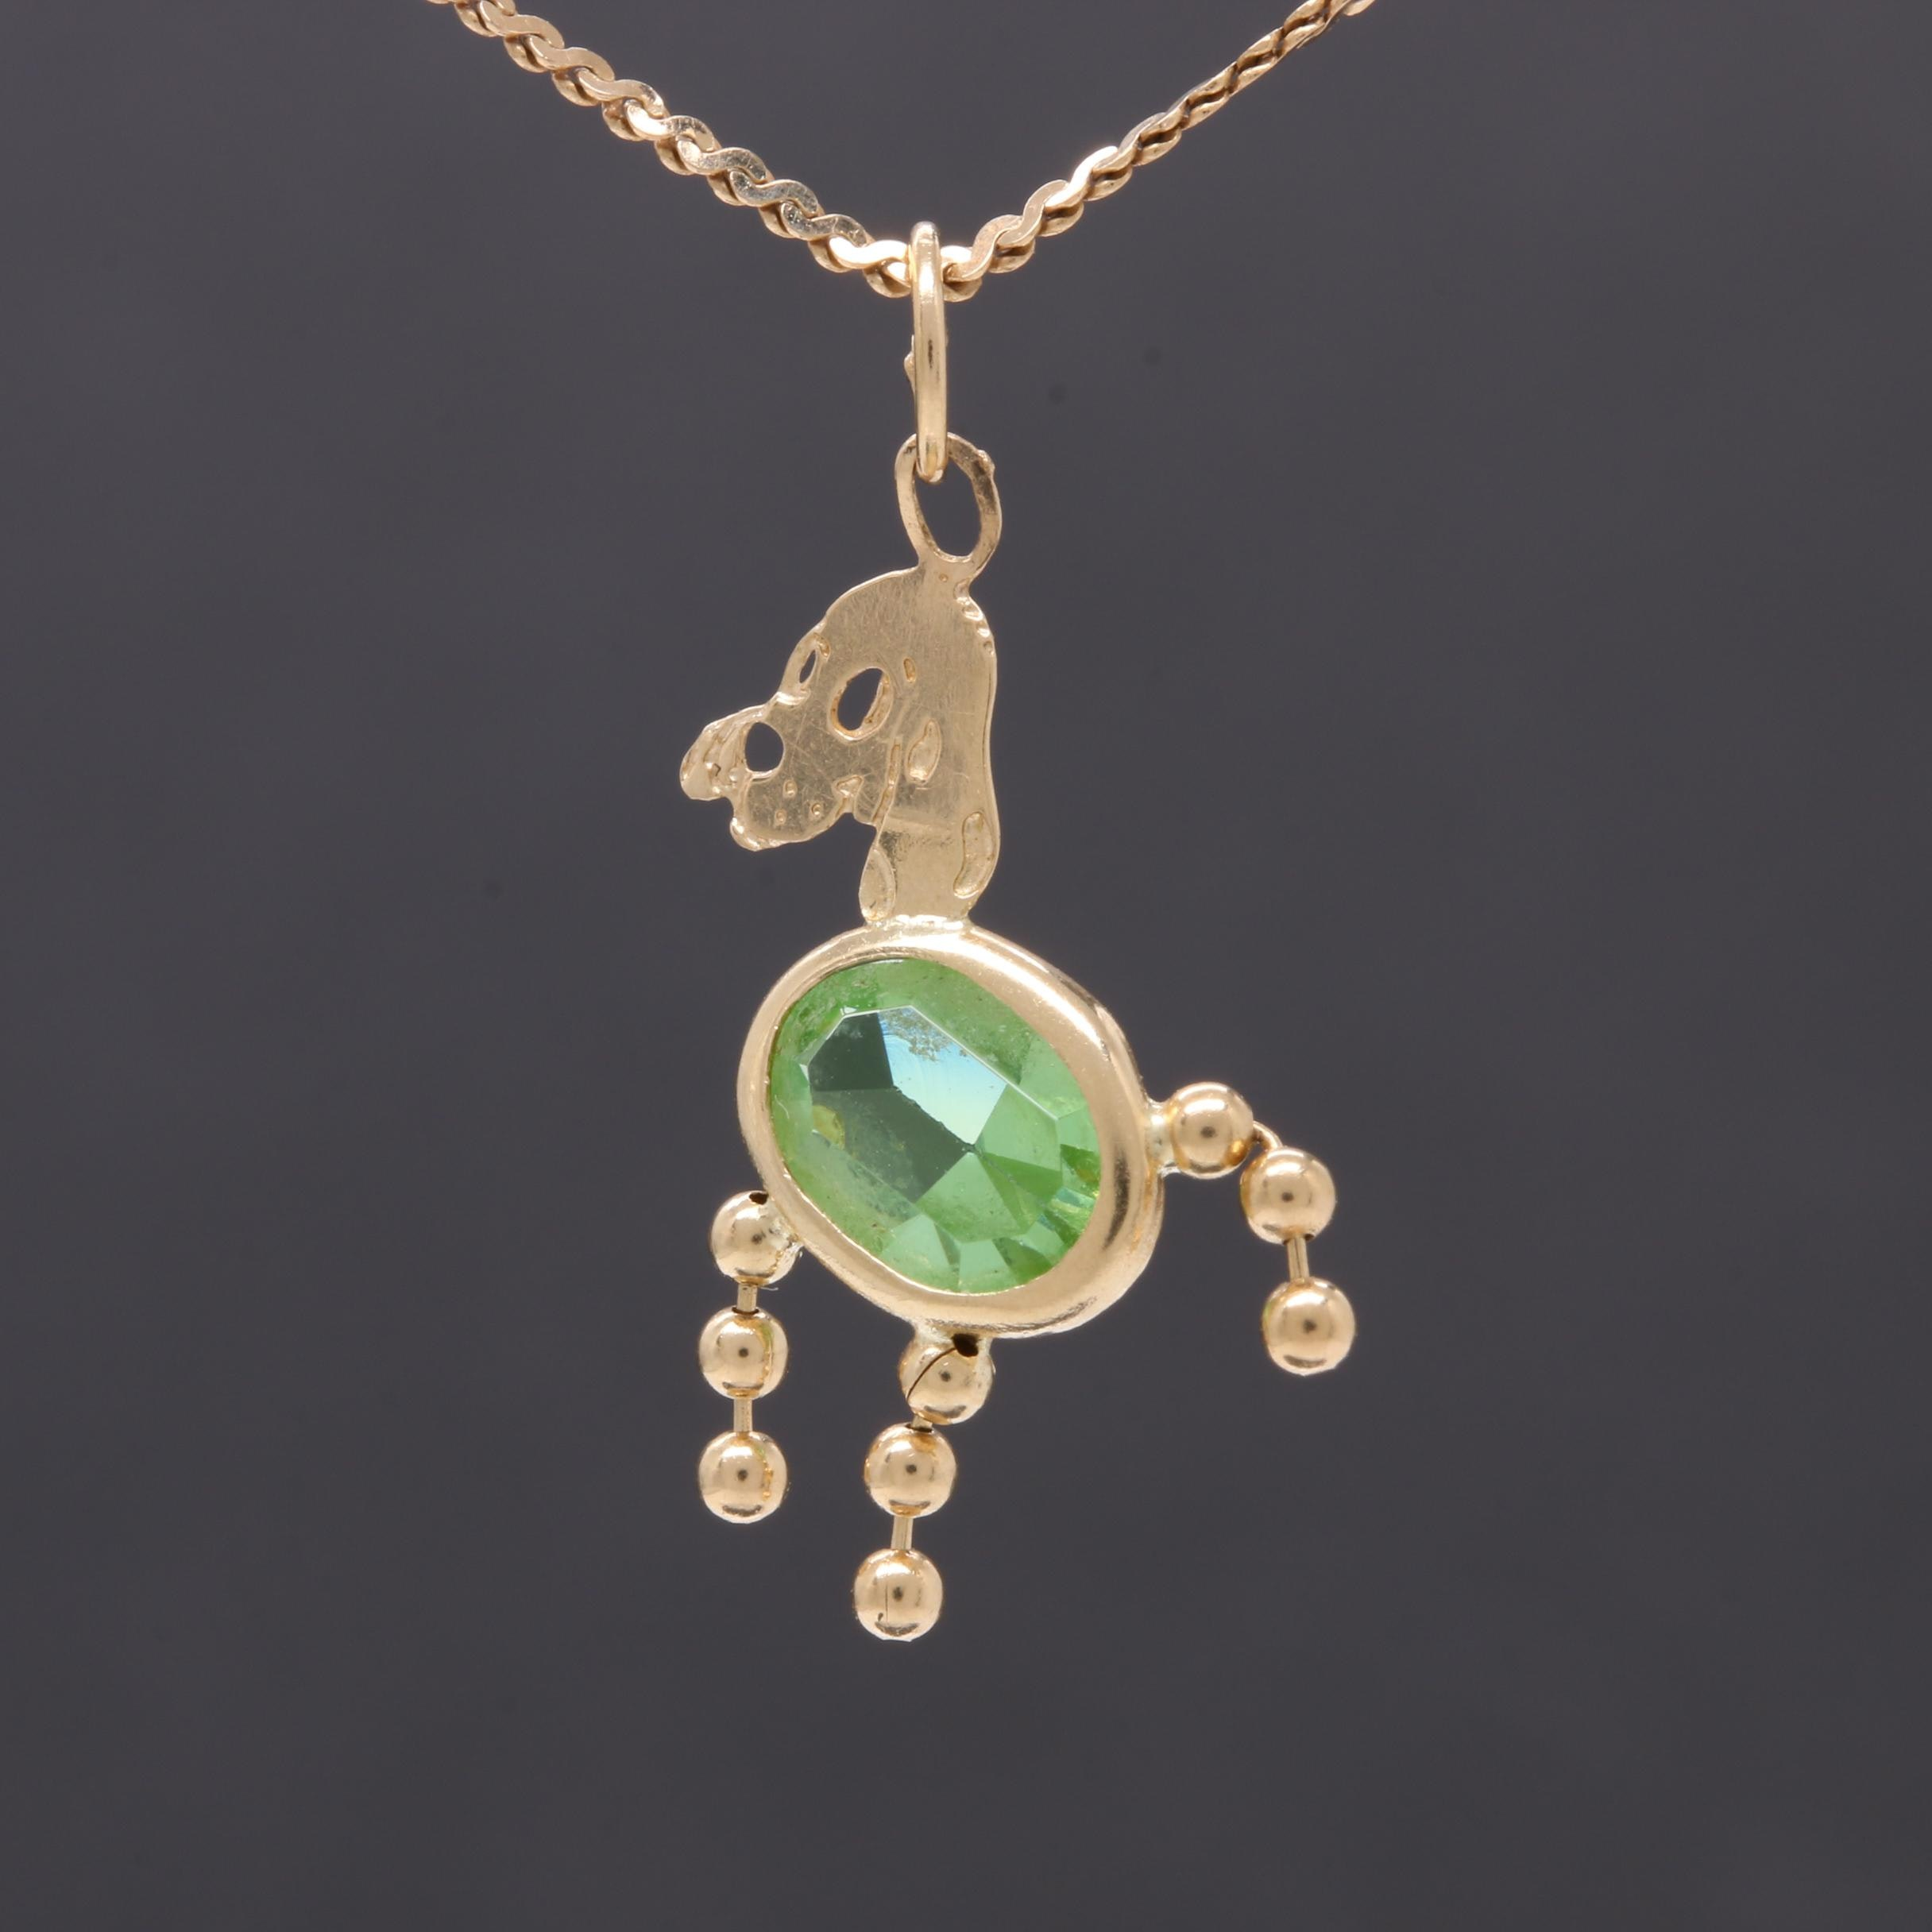 14K Yellow Gold Green Glass Dog Pendant Necklace